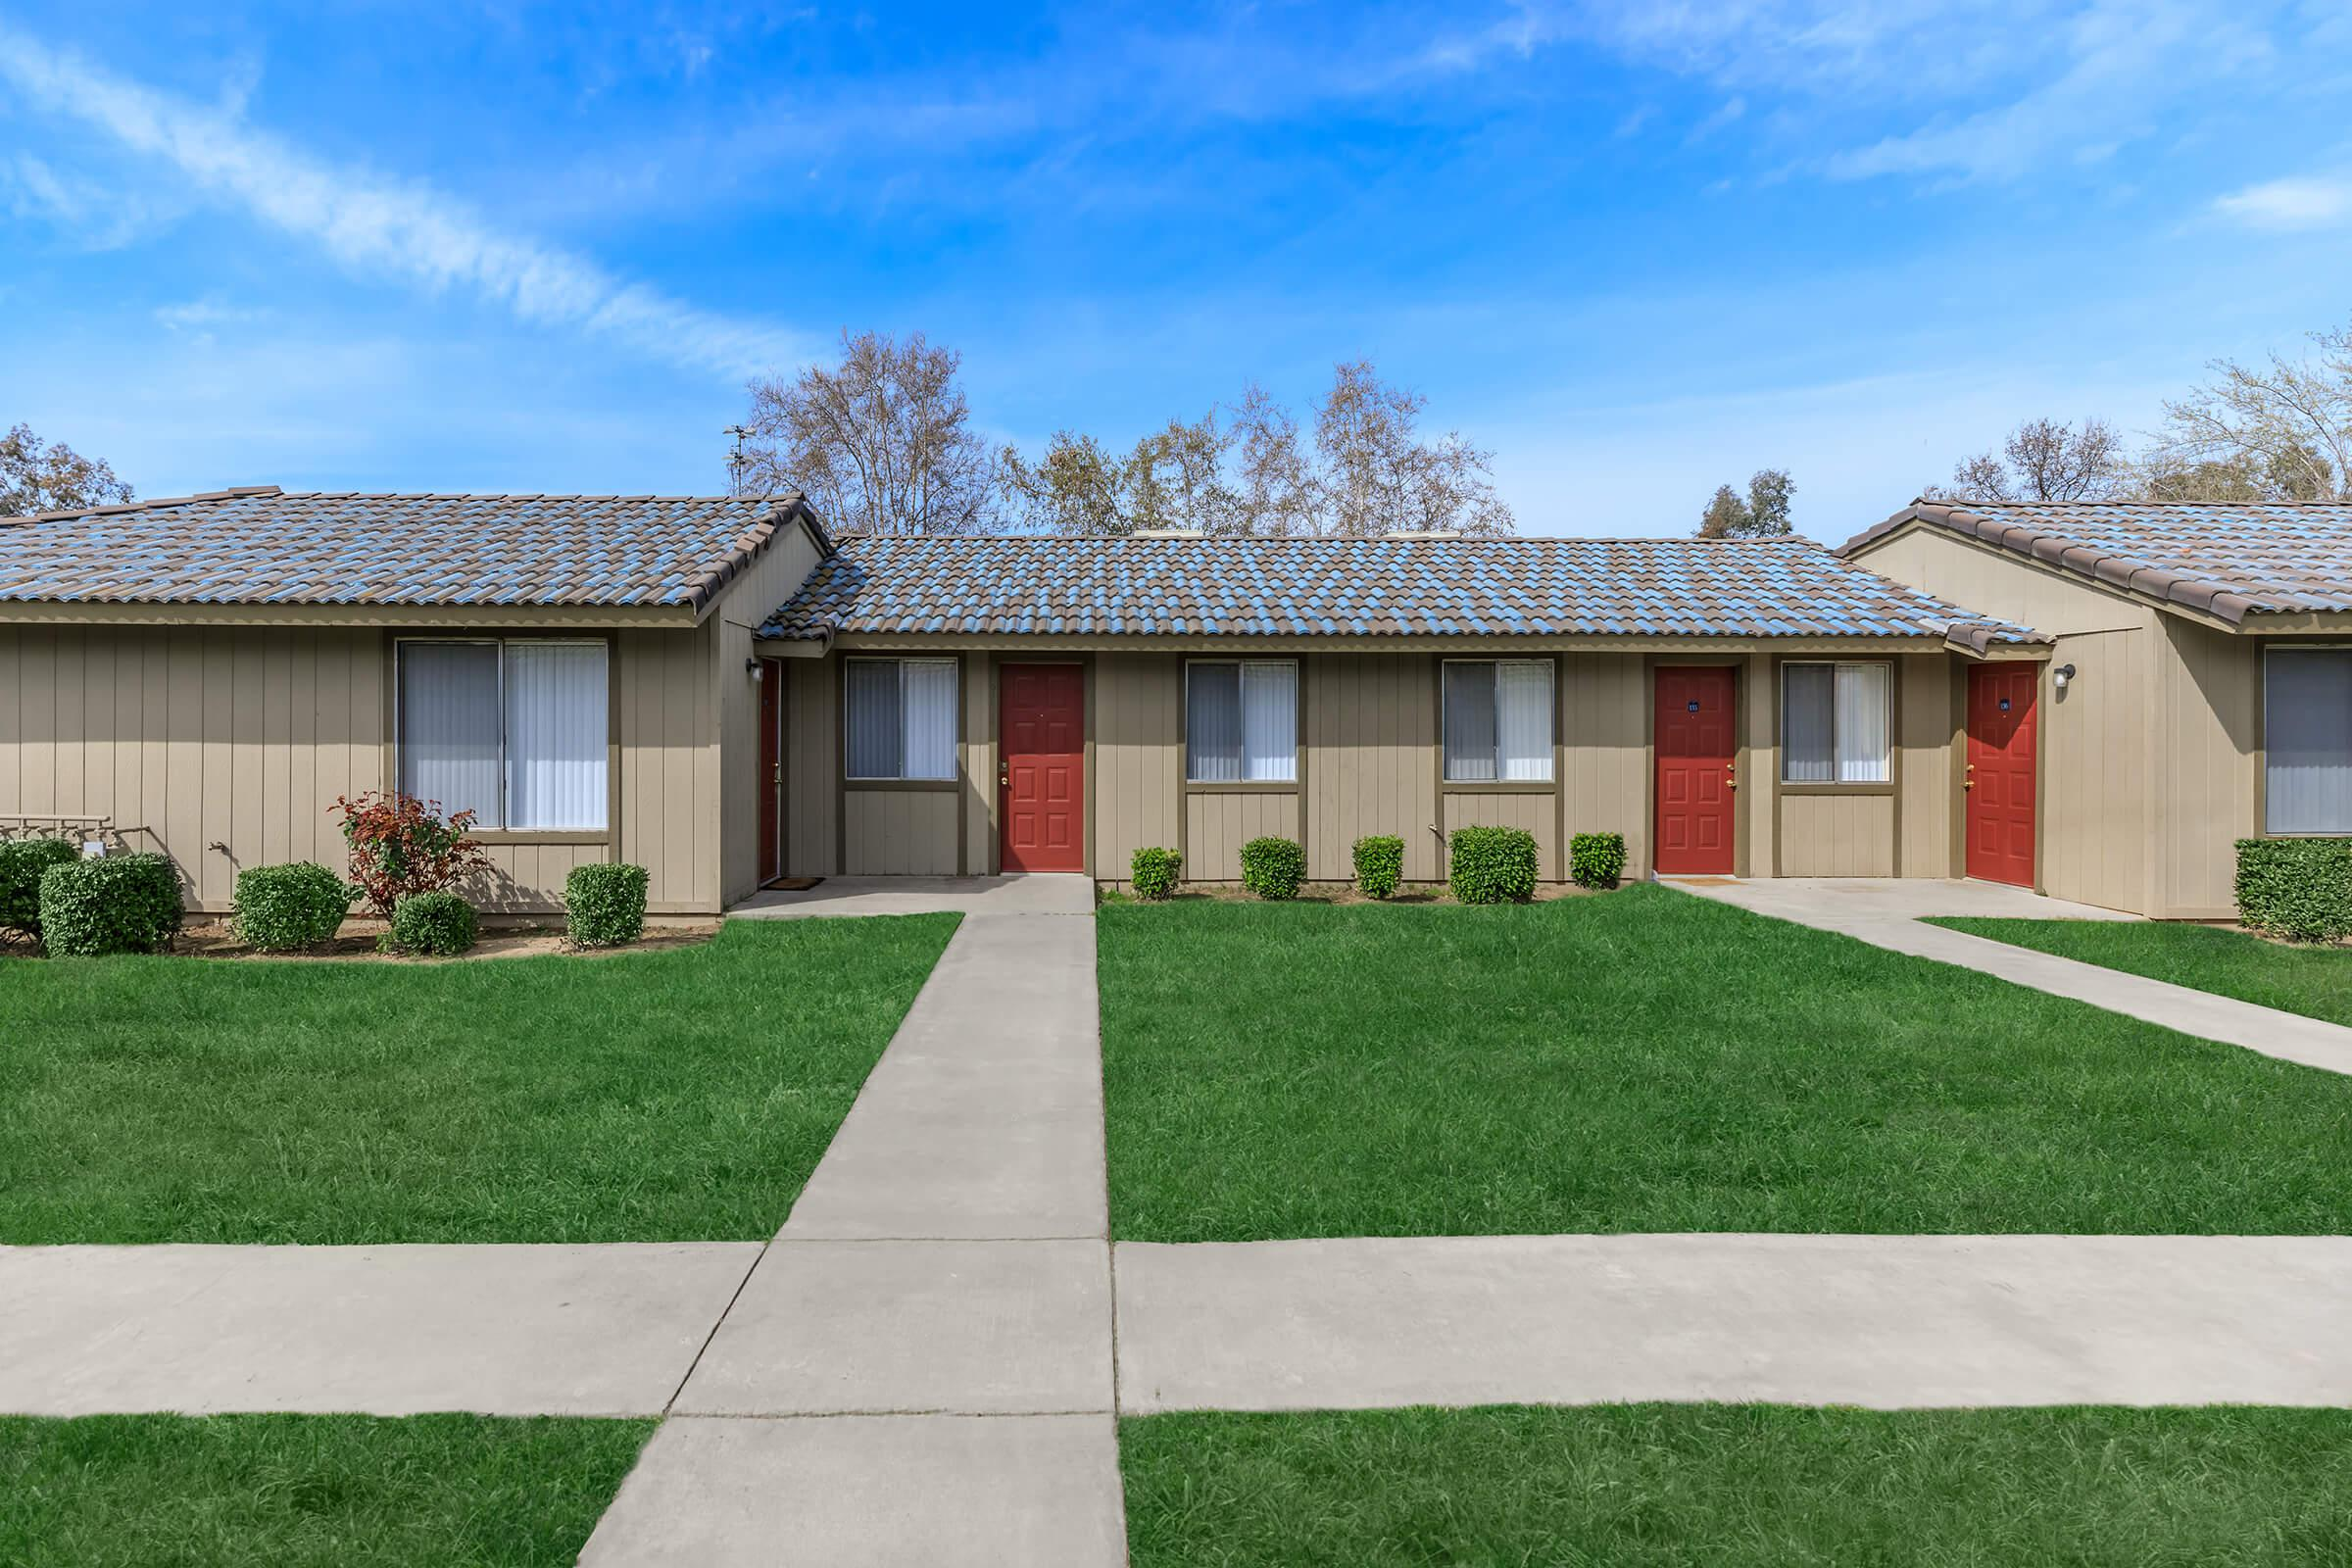 APARTMENTS FOR RENT IN FRESNO, CA